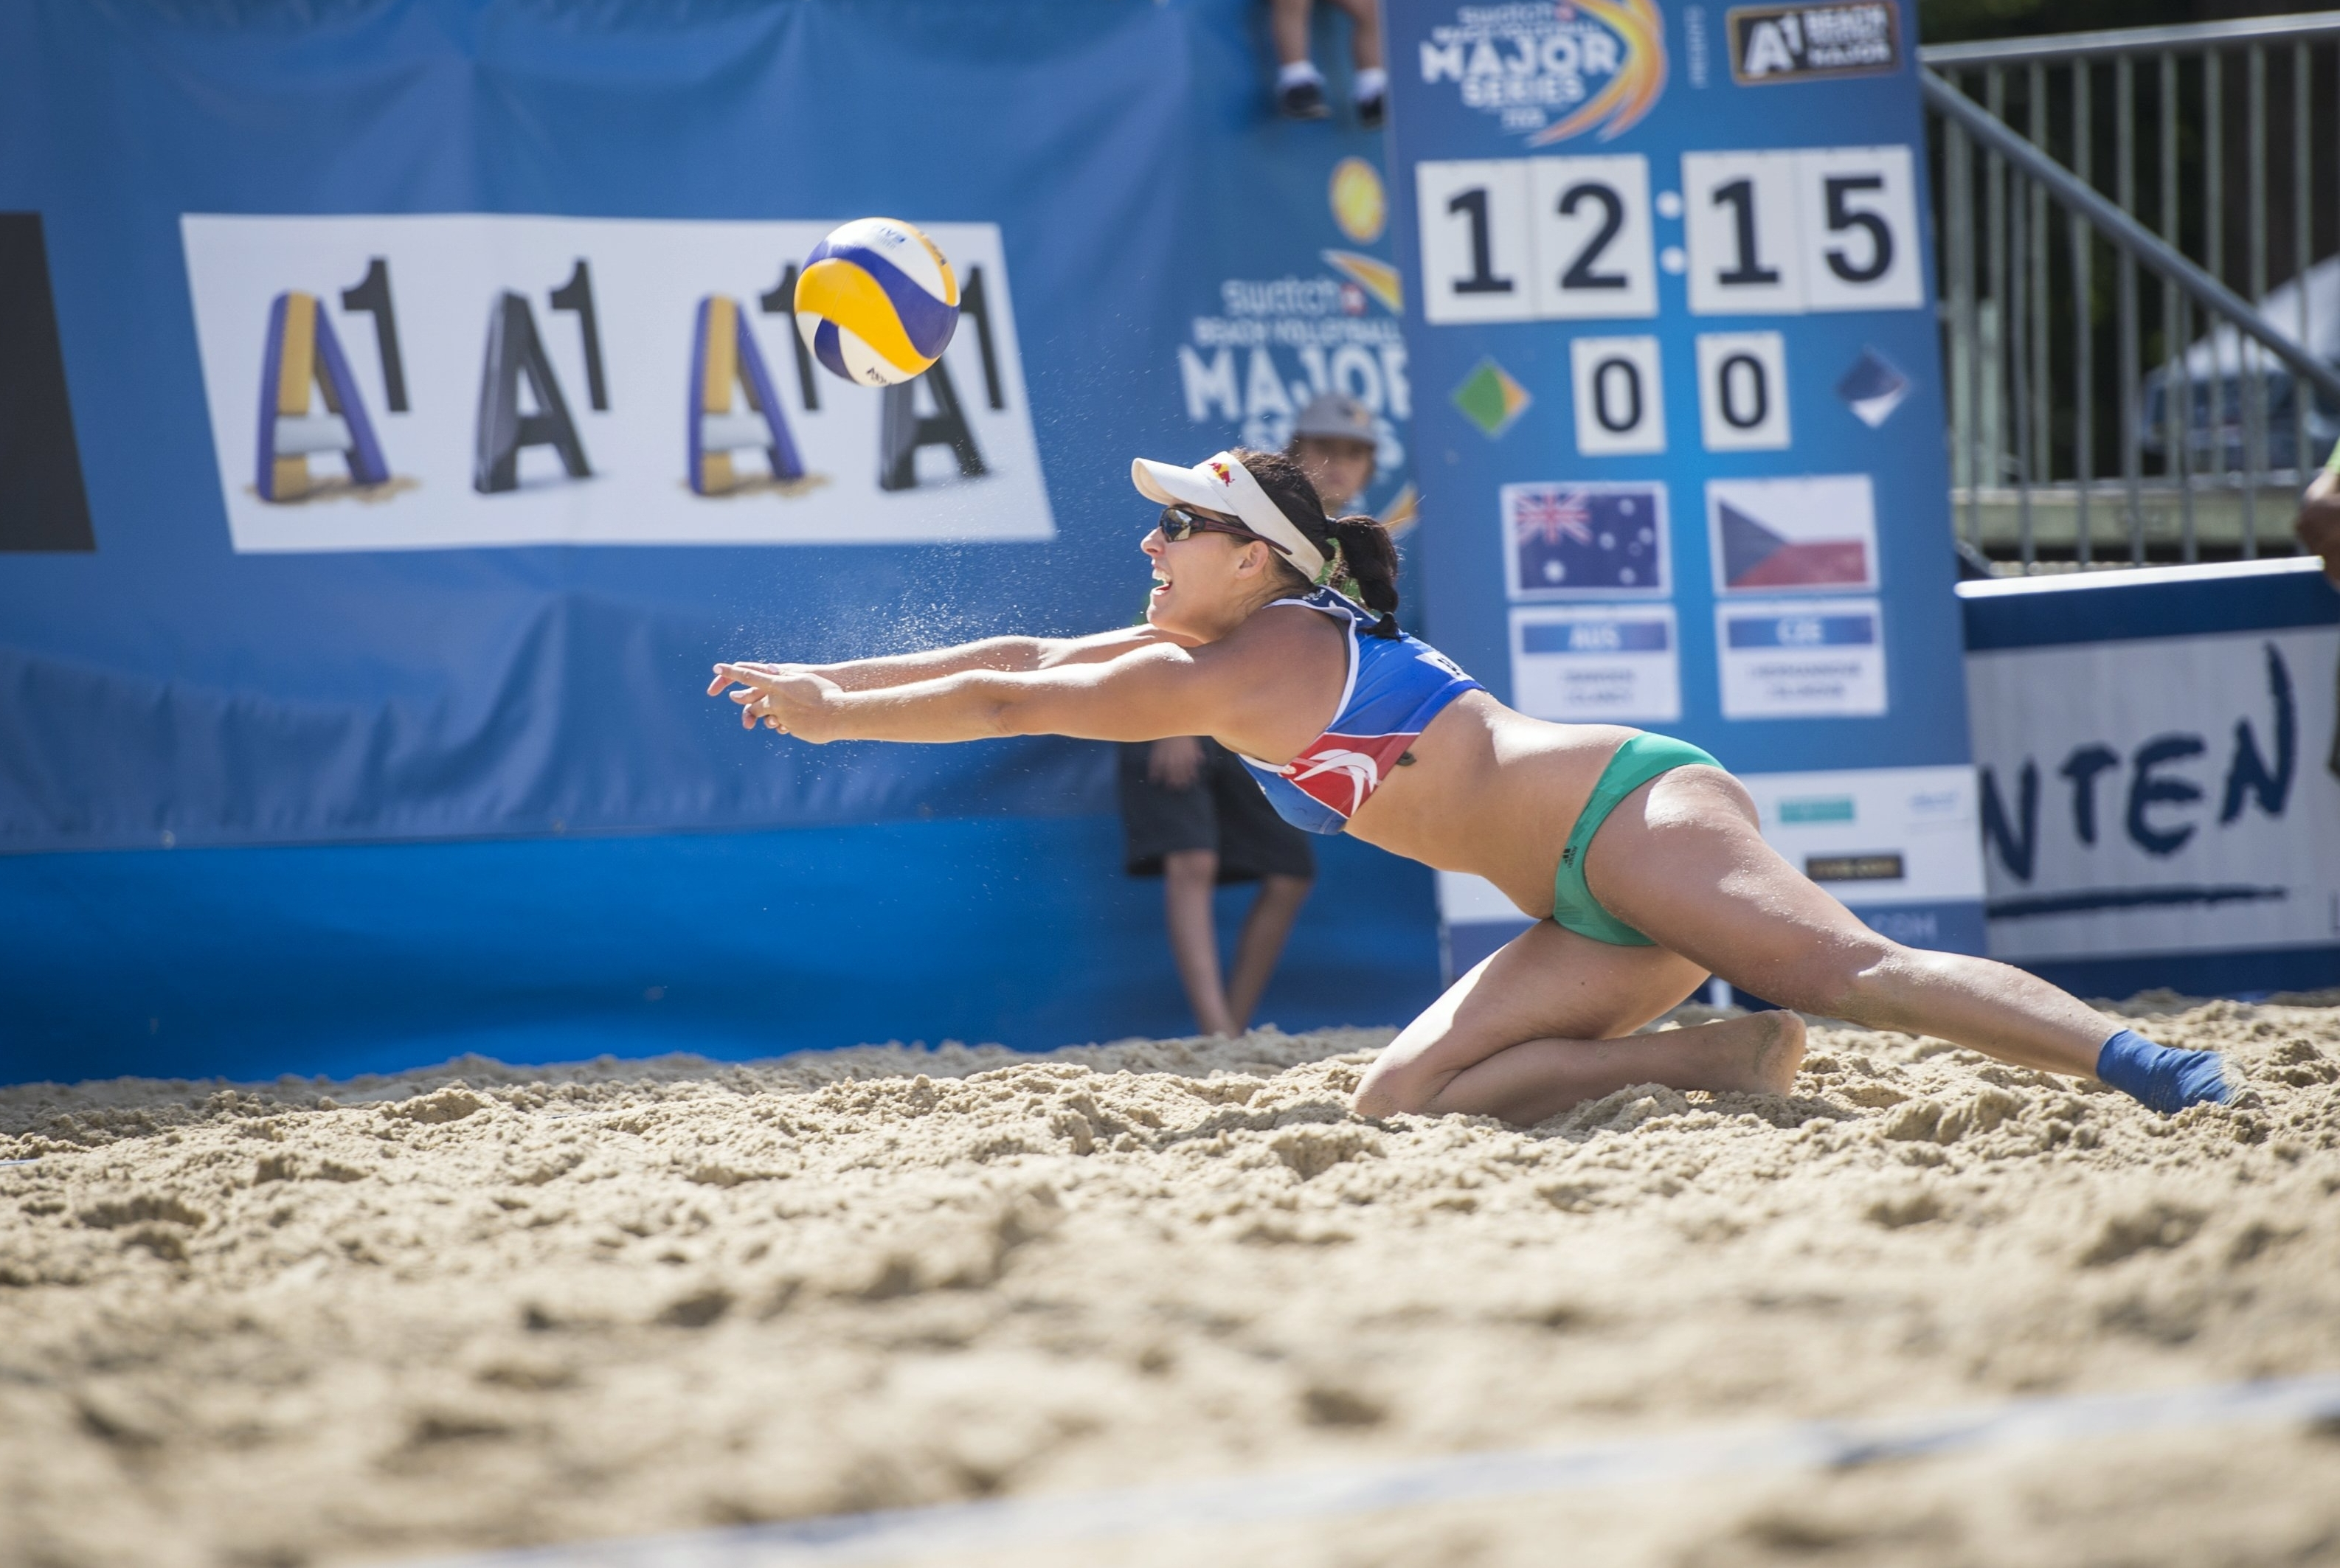 Barbora dives for the ball during the A1 Major Klagenfurt. Photocredit: Philipp Schuster.